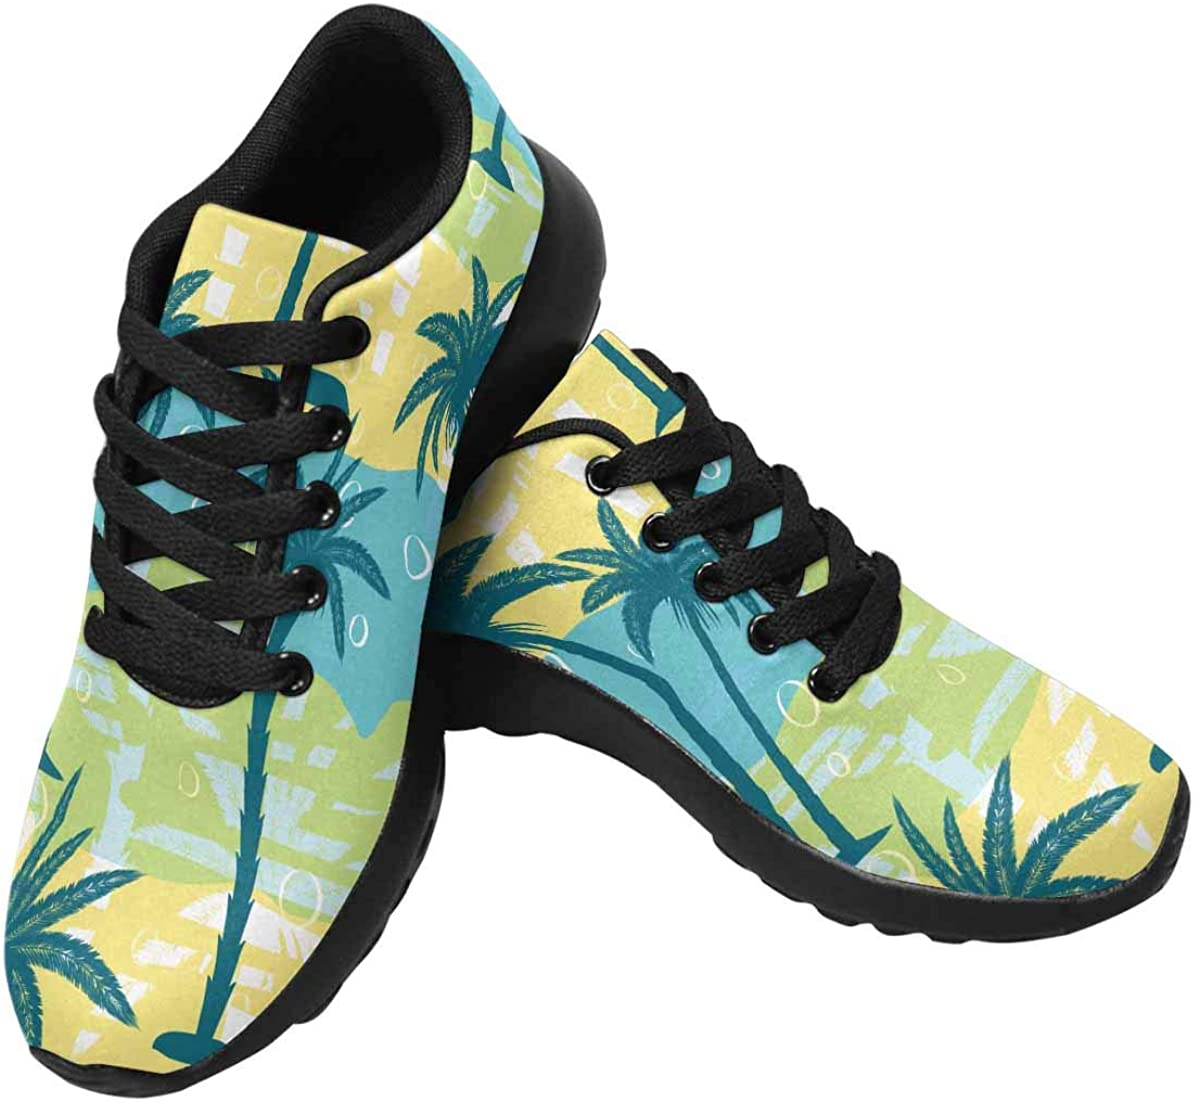 InterestPrint Palm Trees on Colorful Striped Background Womens Jogging Sneakers Outdoor Sport Cross Training Shoes